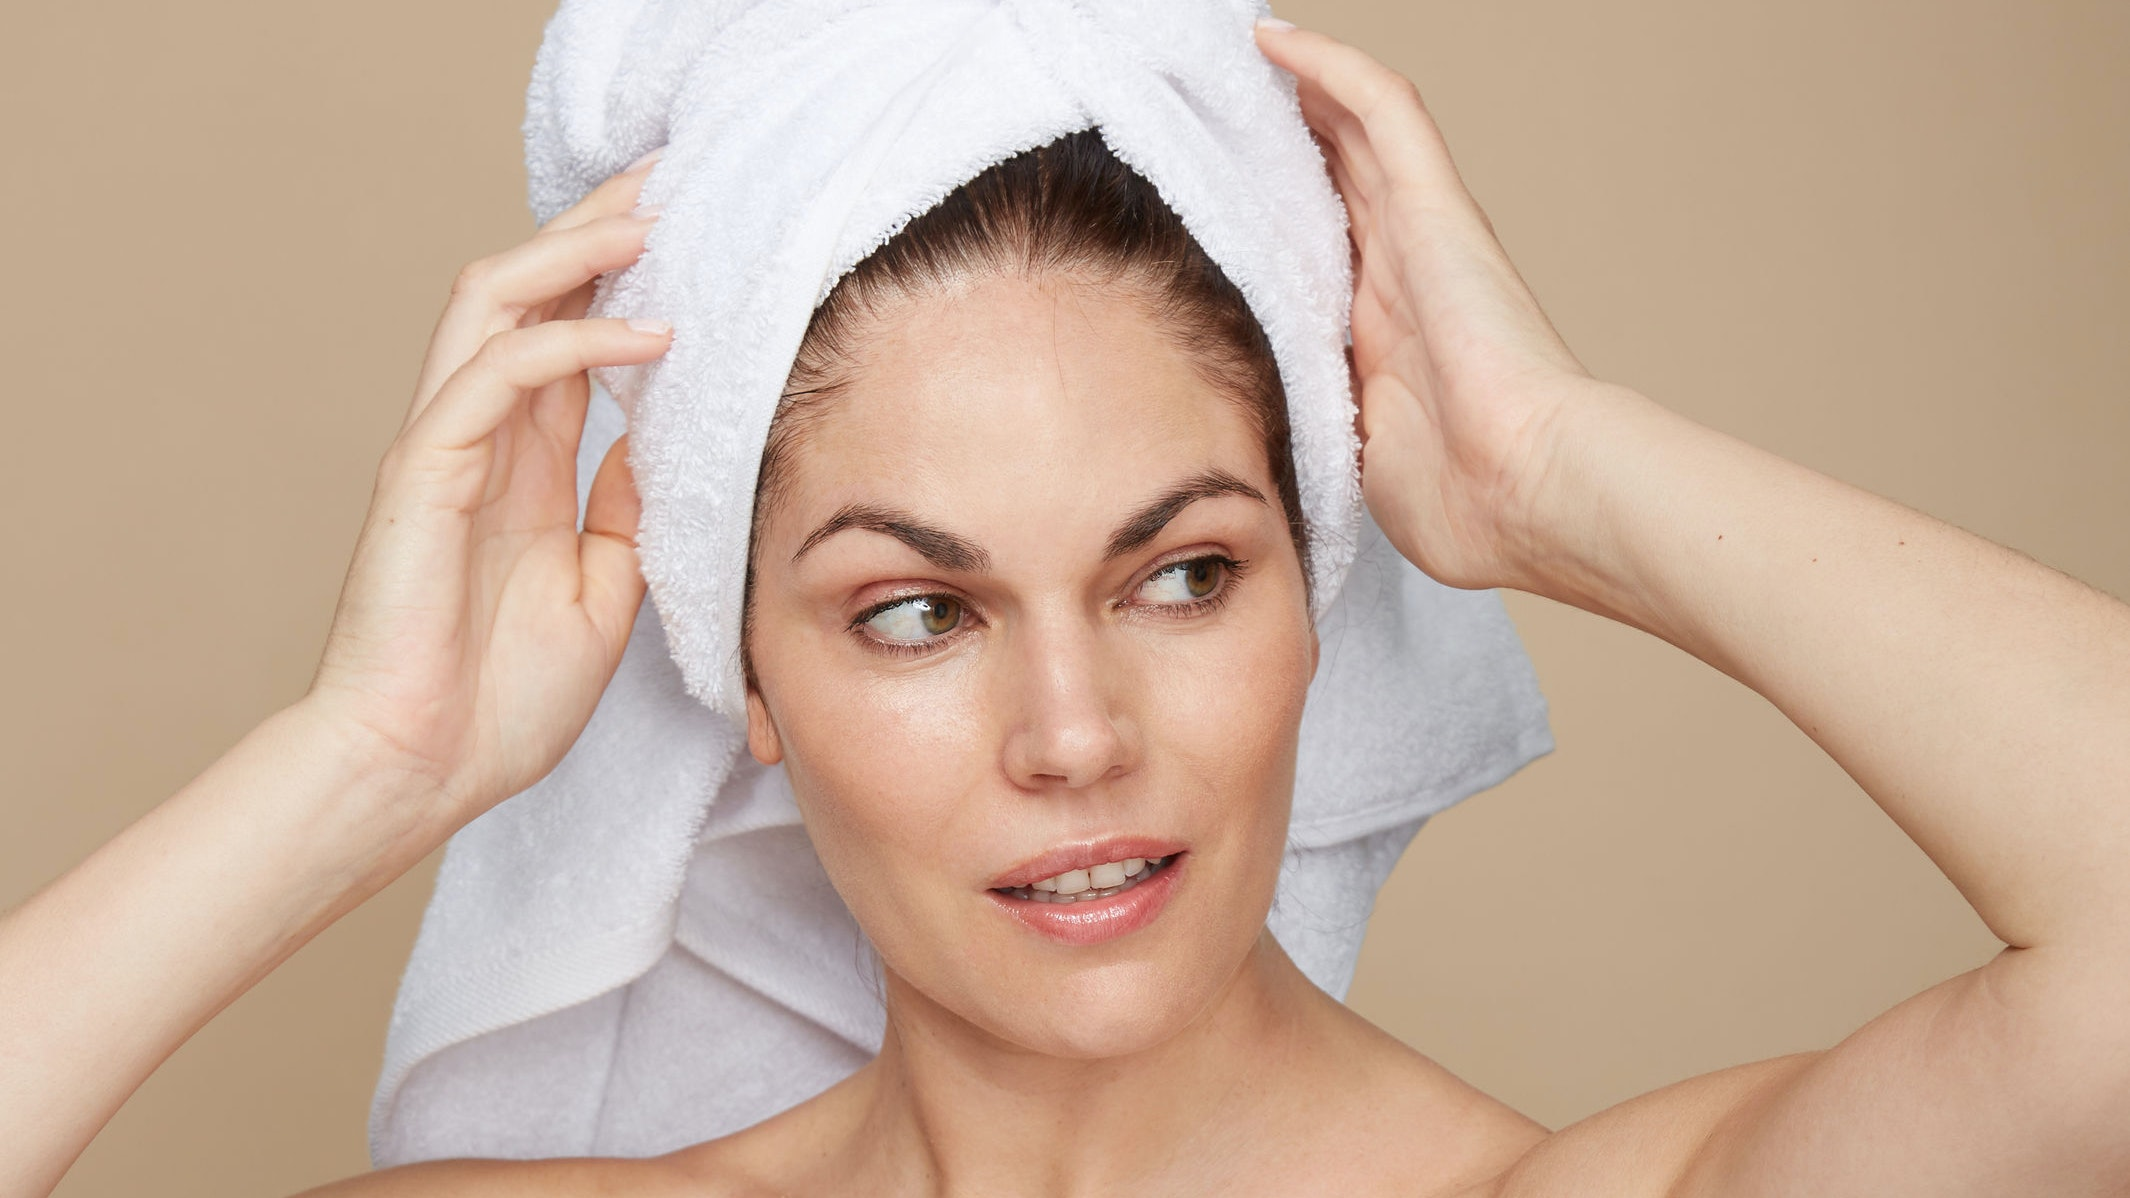 Woman Putting A Towel On Her Head After Shower